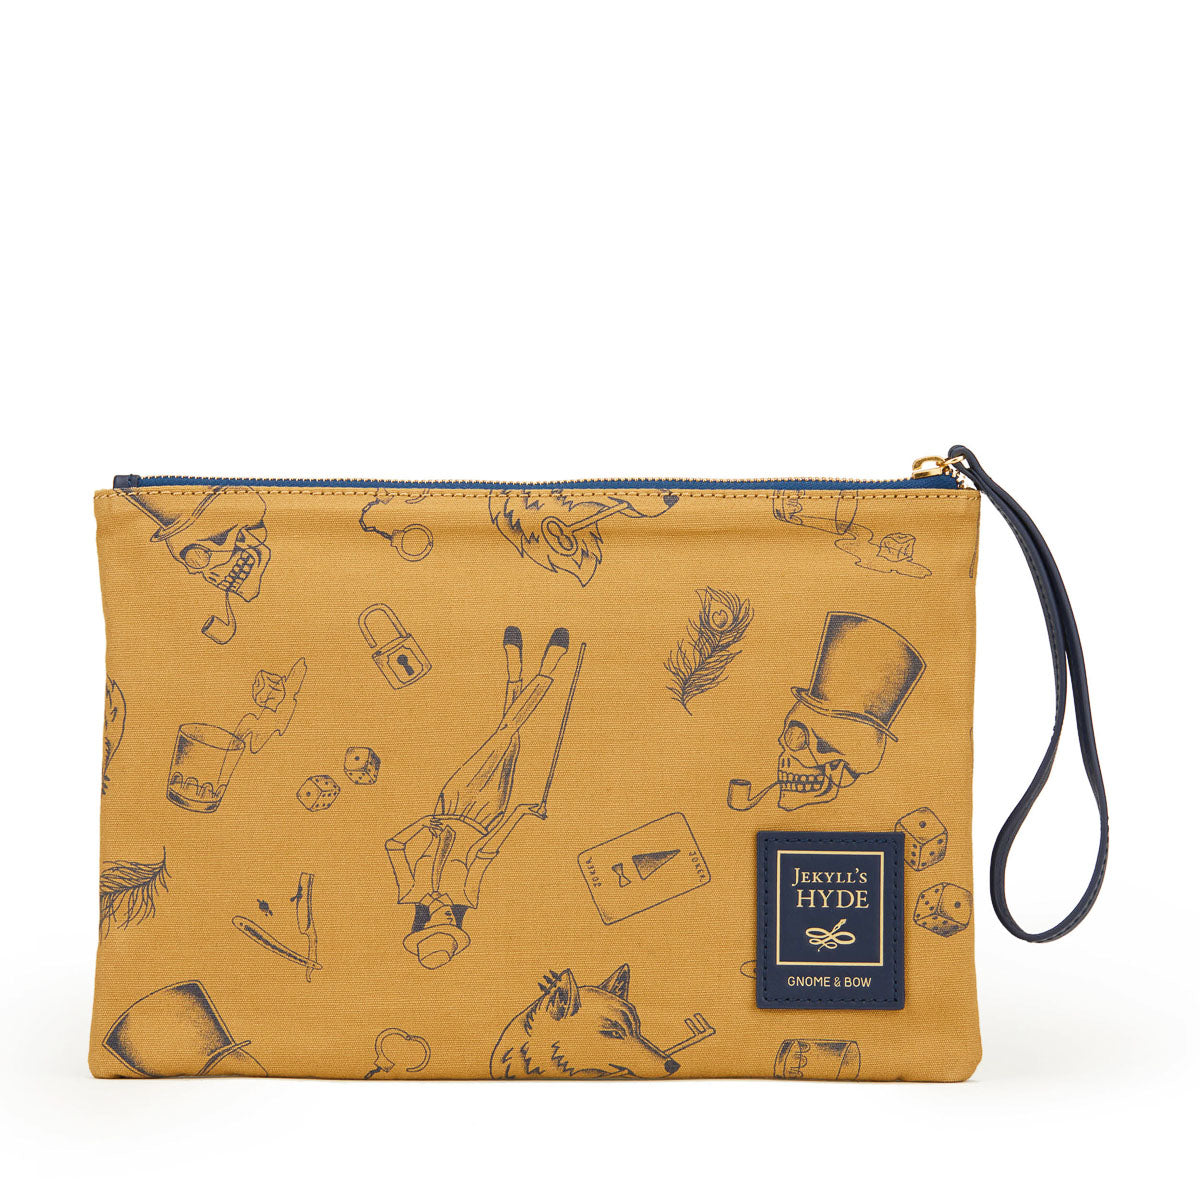 Abbey Clutch (Reversible) | Web-Exclusive - Gnome & Bow